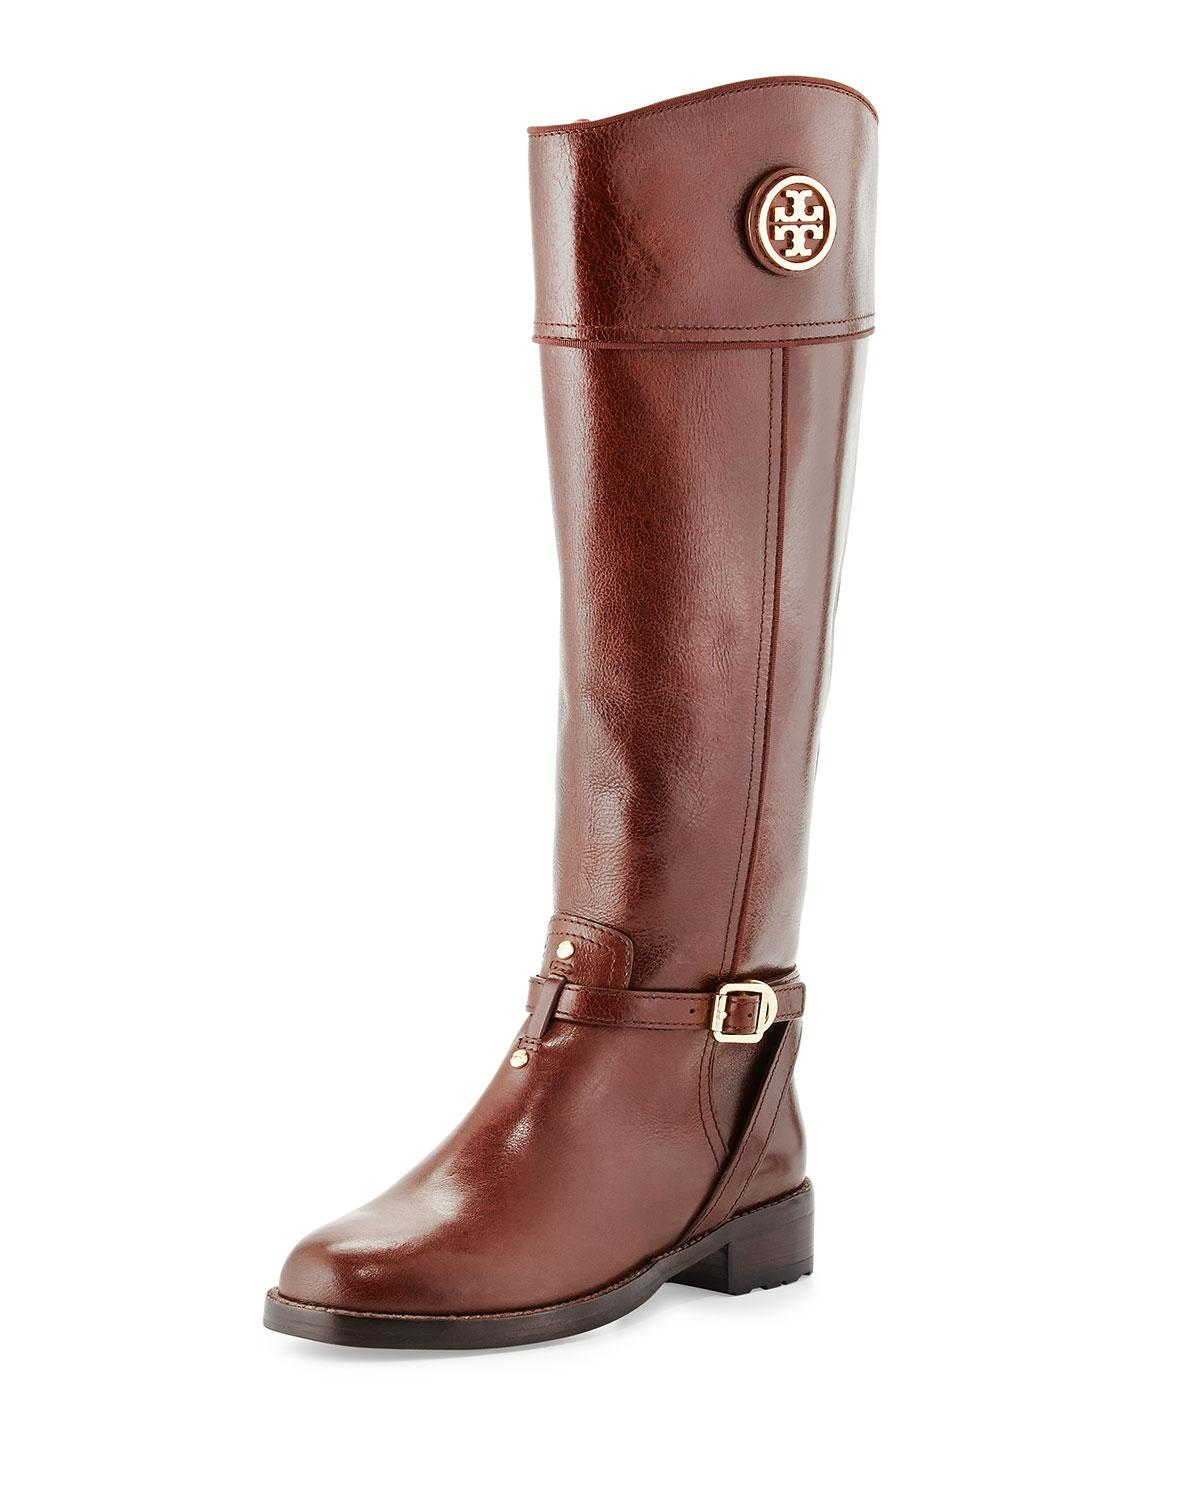 Tory Burch Brown/Almond Teresa Logo Riding Boots/Booties Size US 7 Regular (M, B)